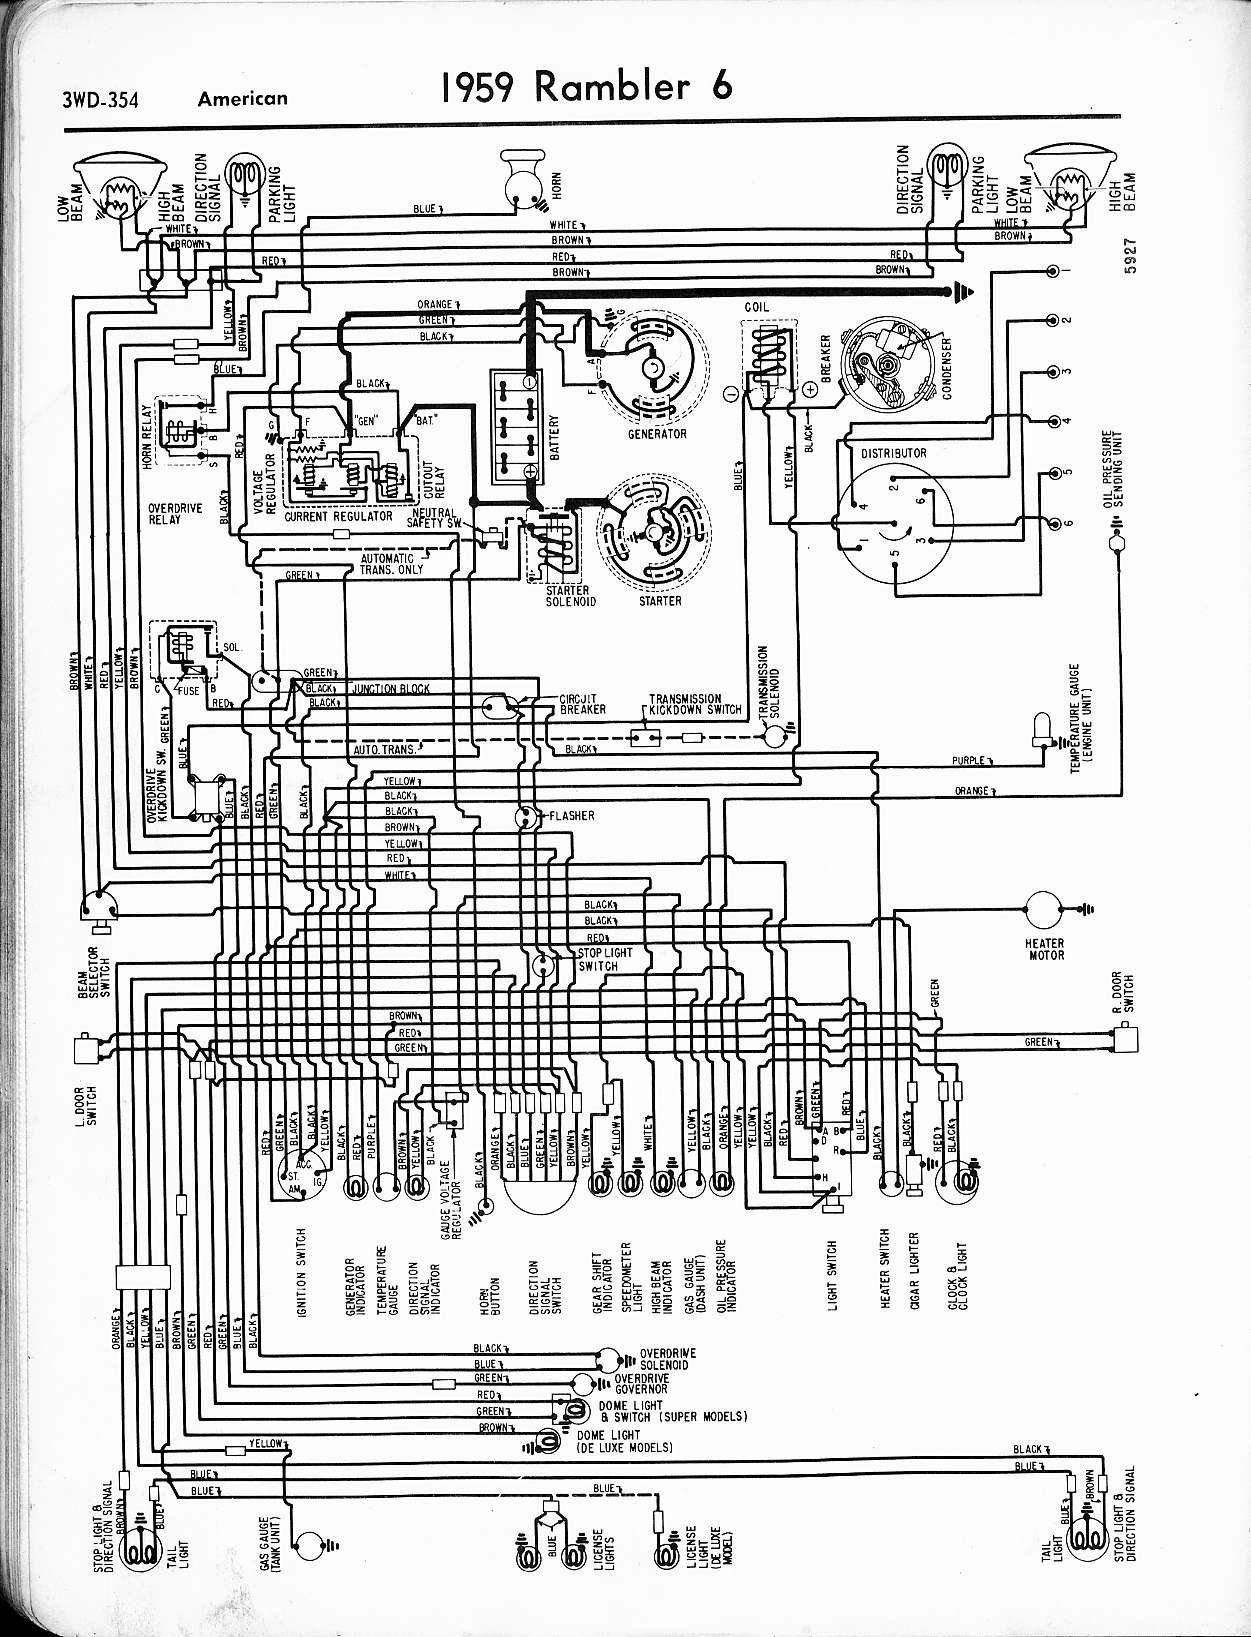 Amc Wiring Diagram Archive Of Automotive Amx Rambler Diagrams The Old Car Manual Project Rh Oldcarmanualproject Com 1970 Javelin